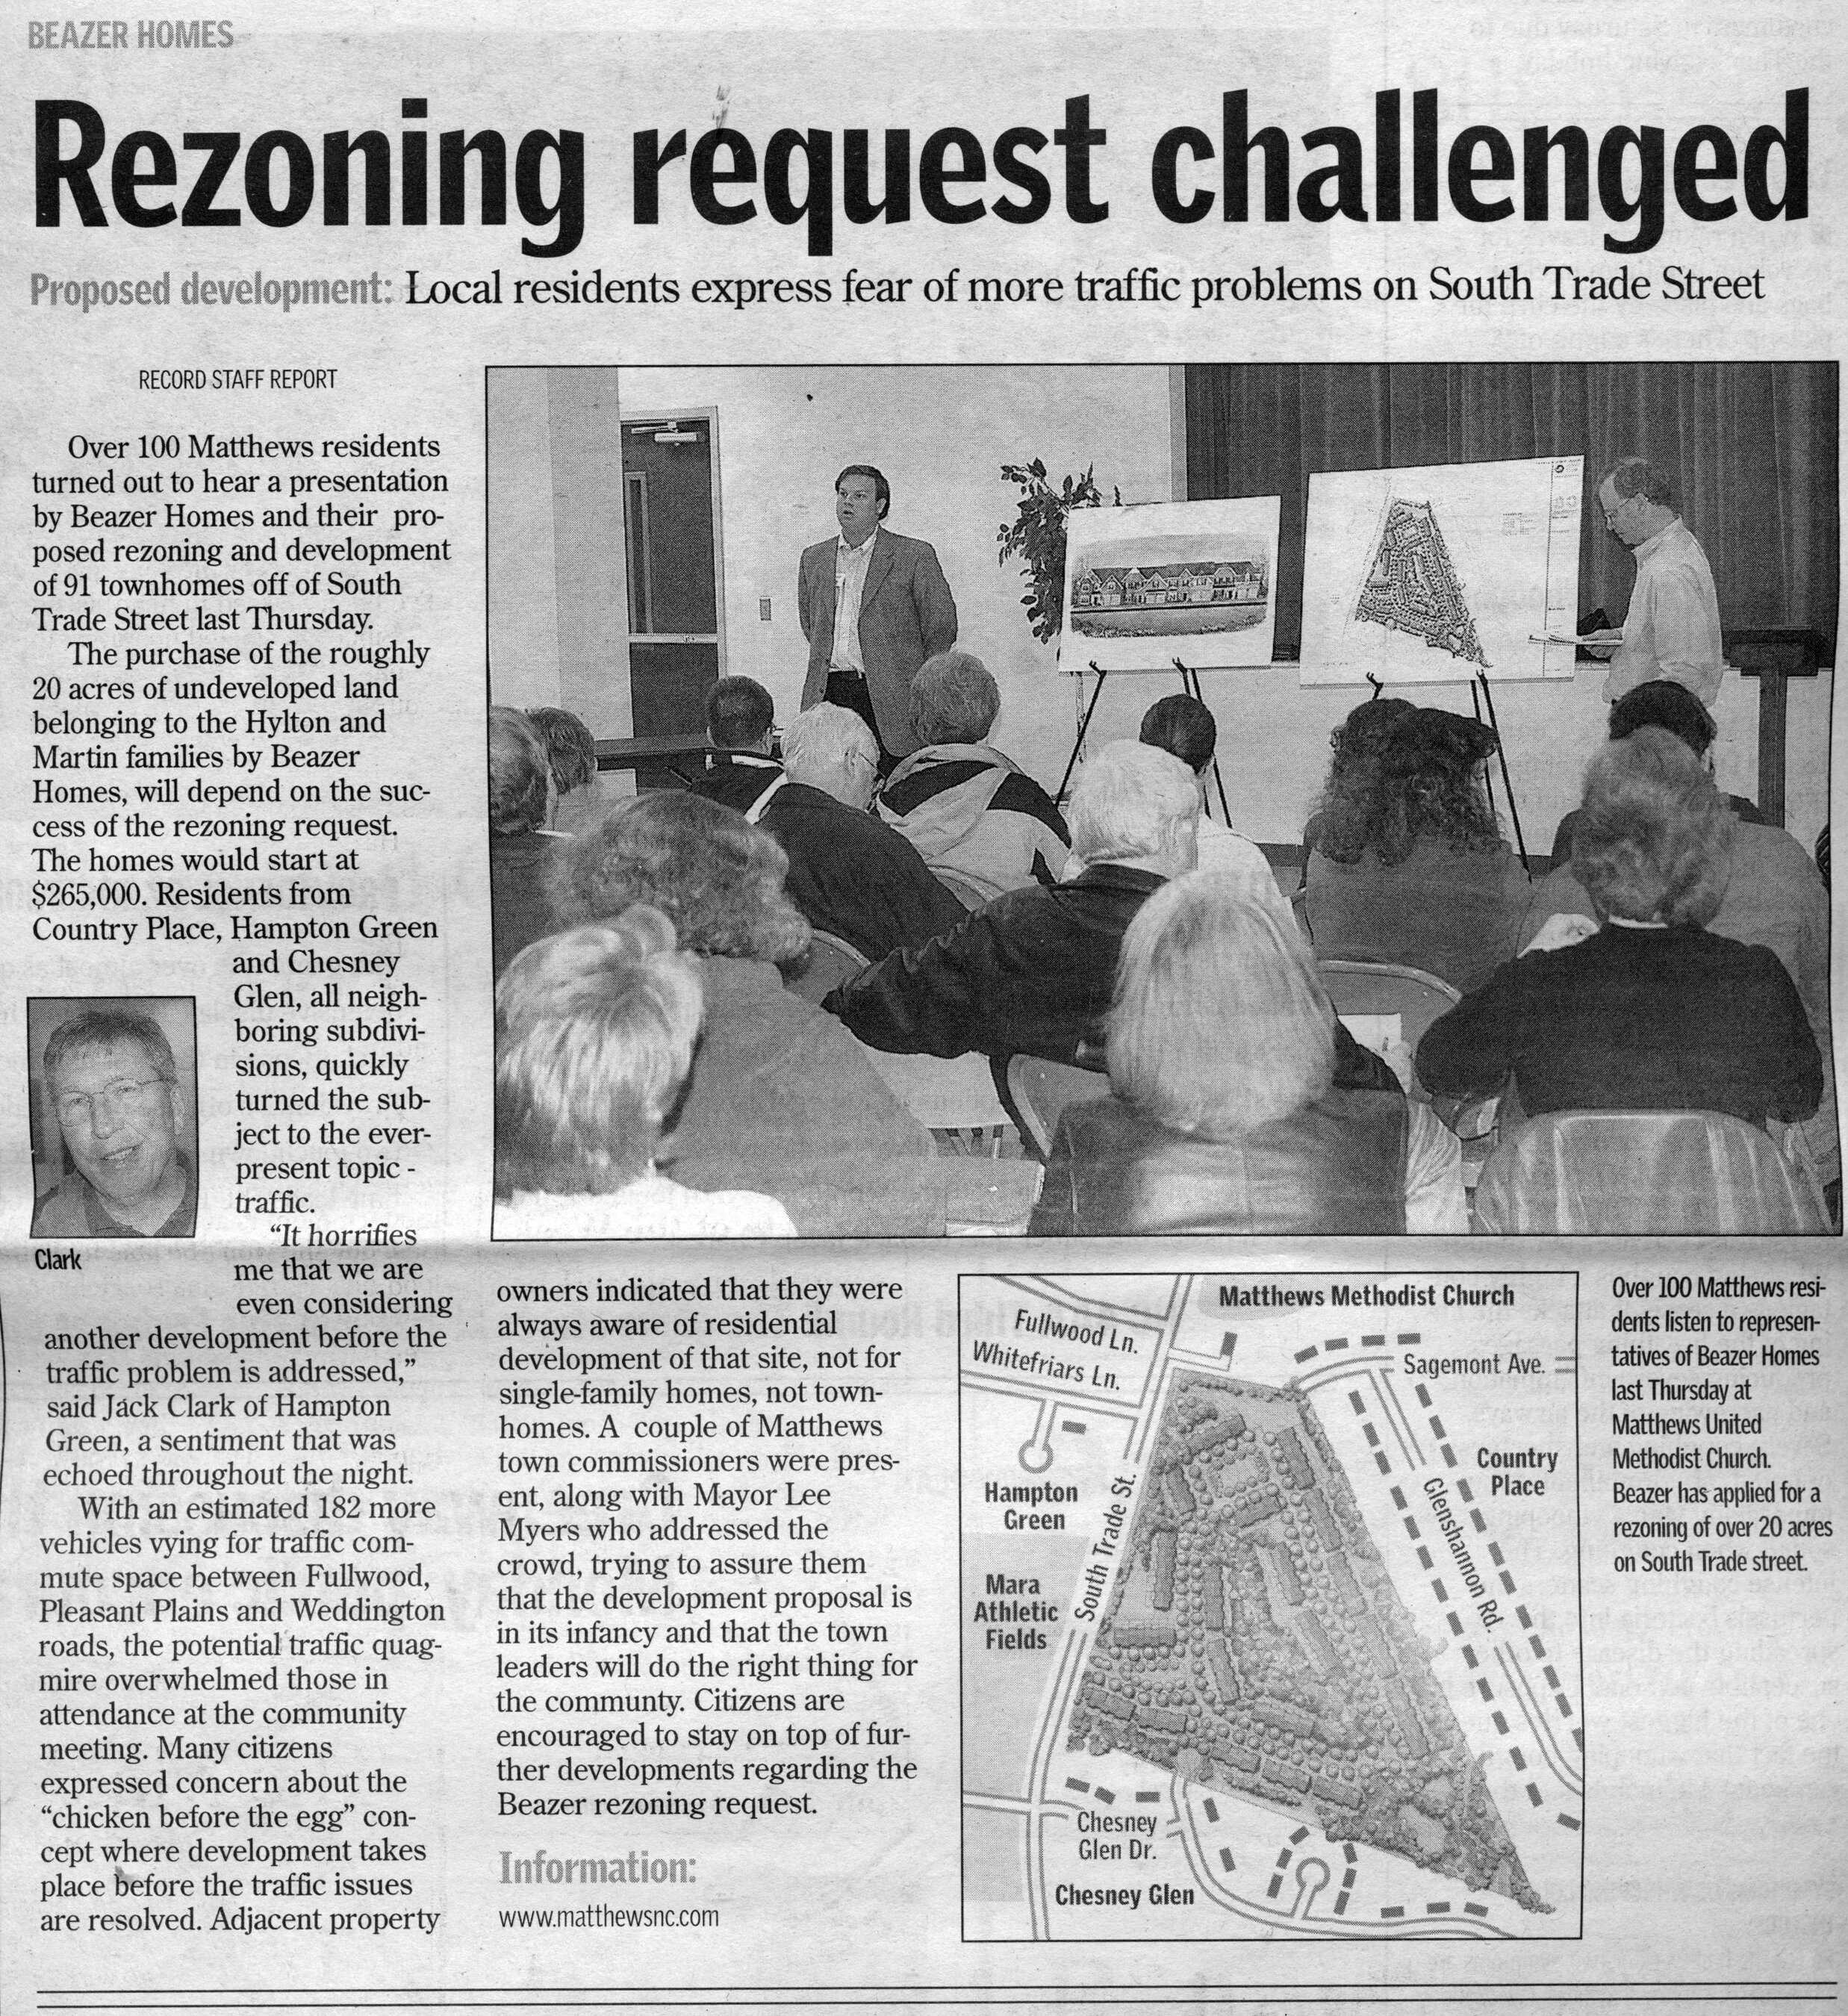 throwbackthursday nov 2006 rezoning.jpg